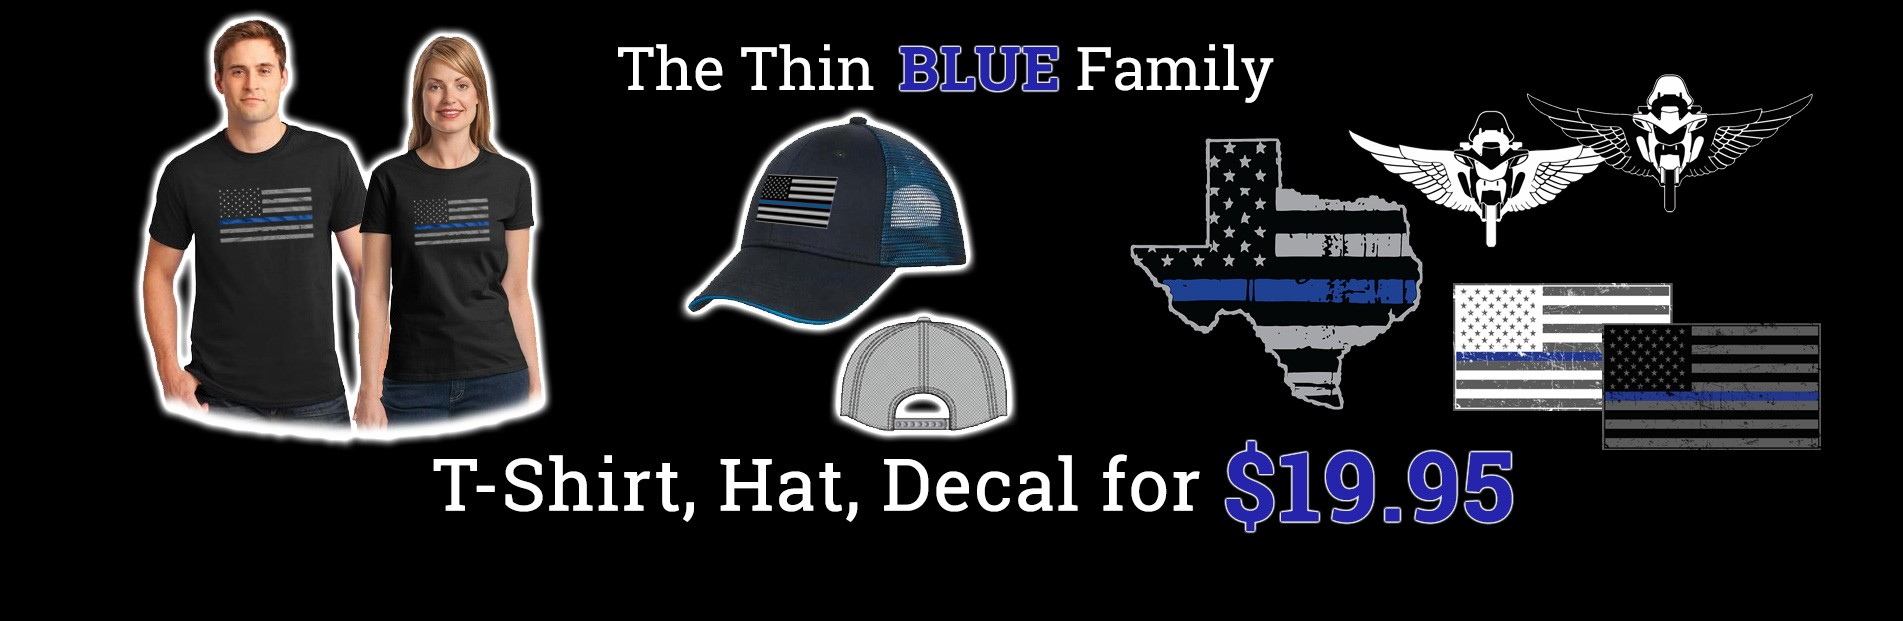 Thin Blue Line Family Three Product Combo - T-Shirt, Hat, Decal